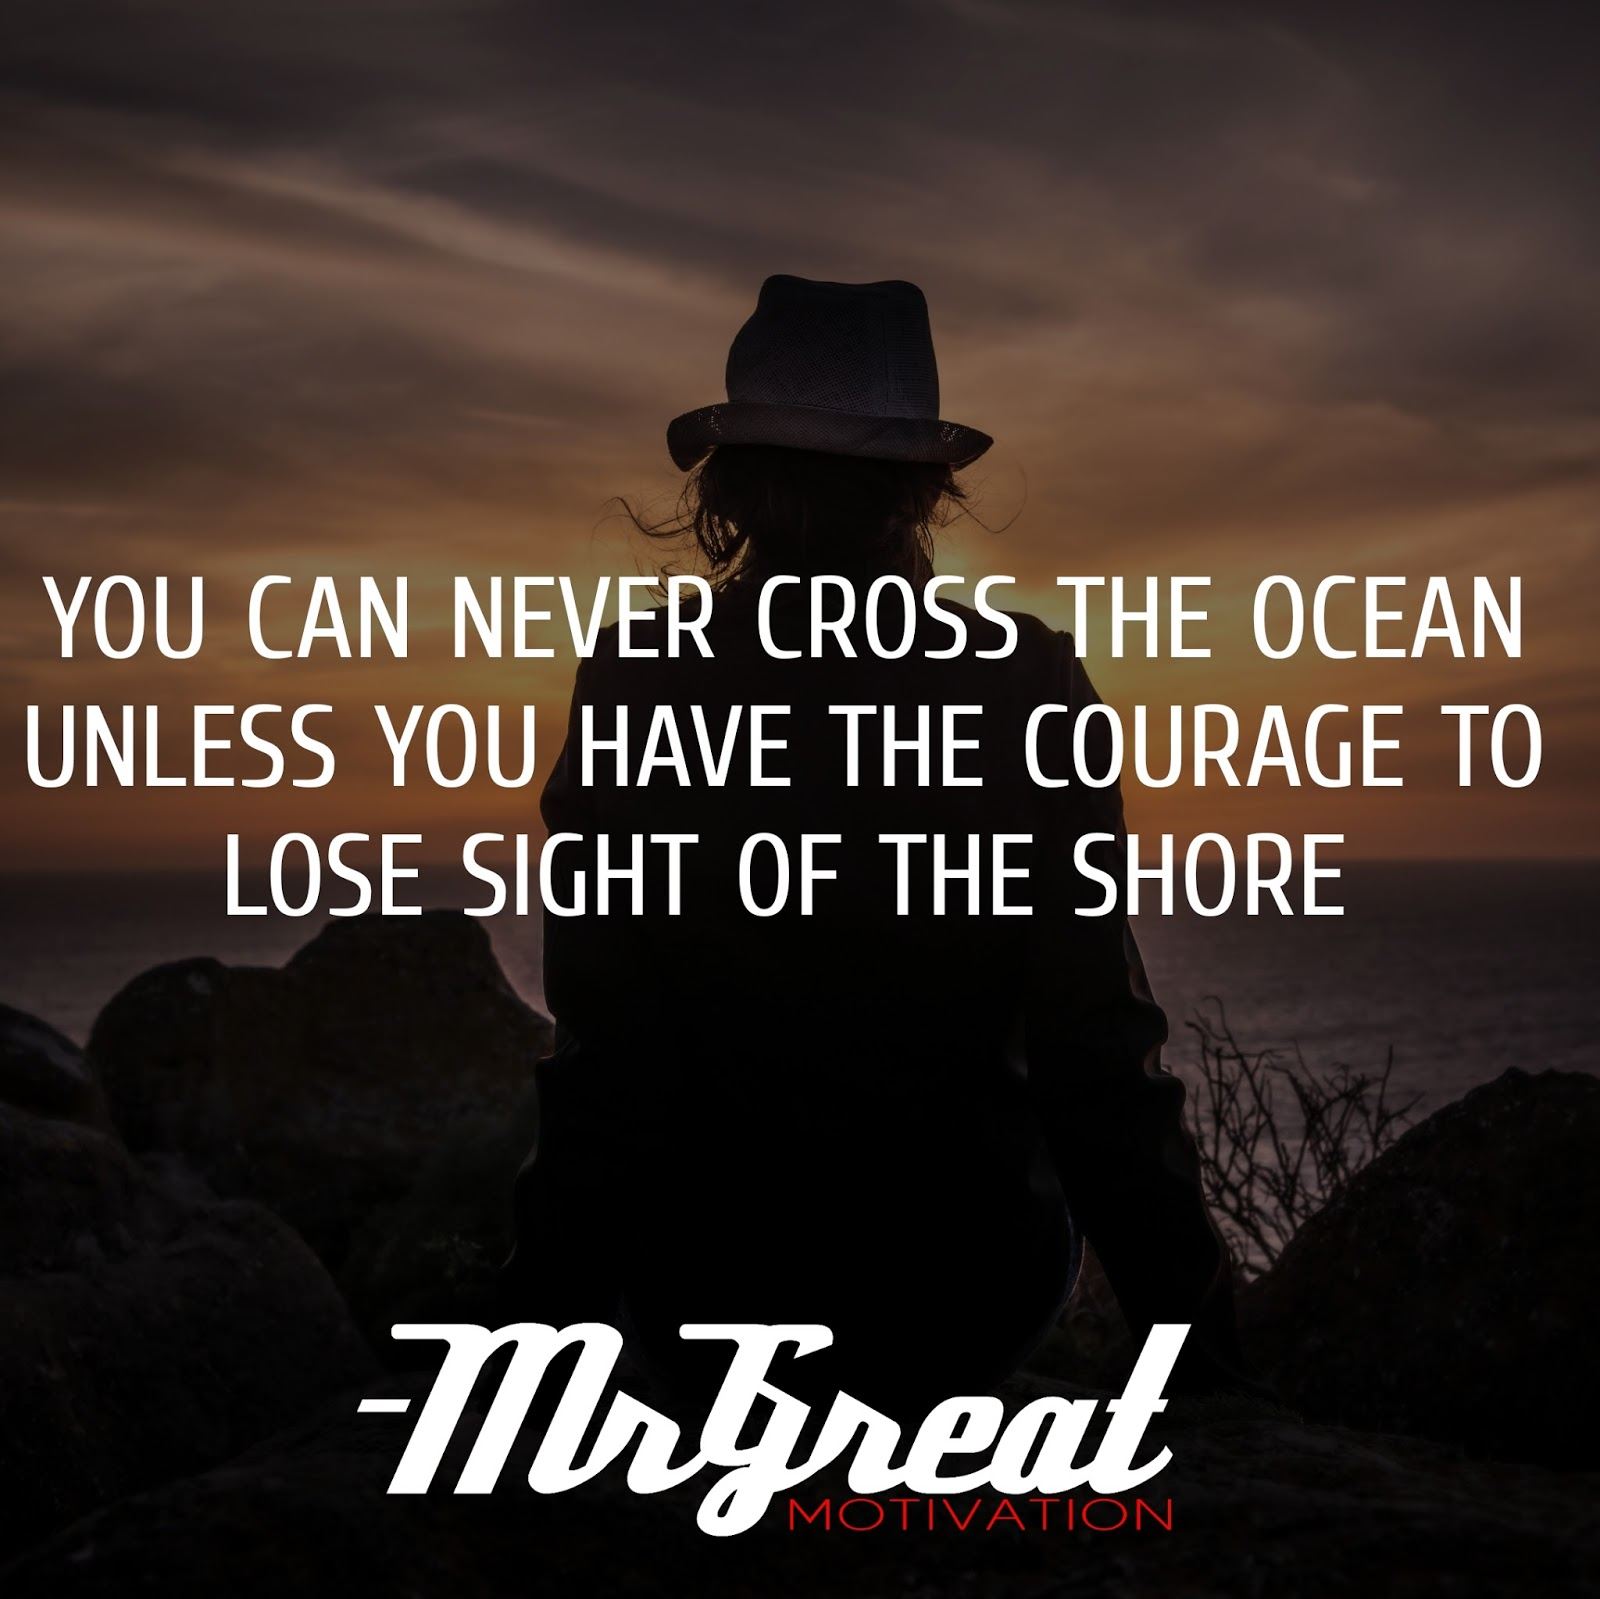 You can never cross the ocean until you have the courage to lose sight of the shore - Christopher Columbus